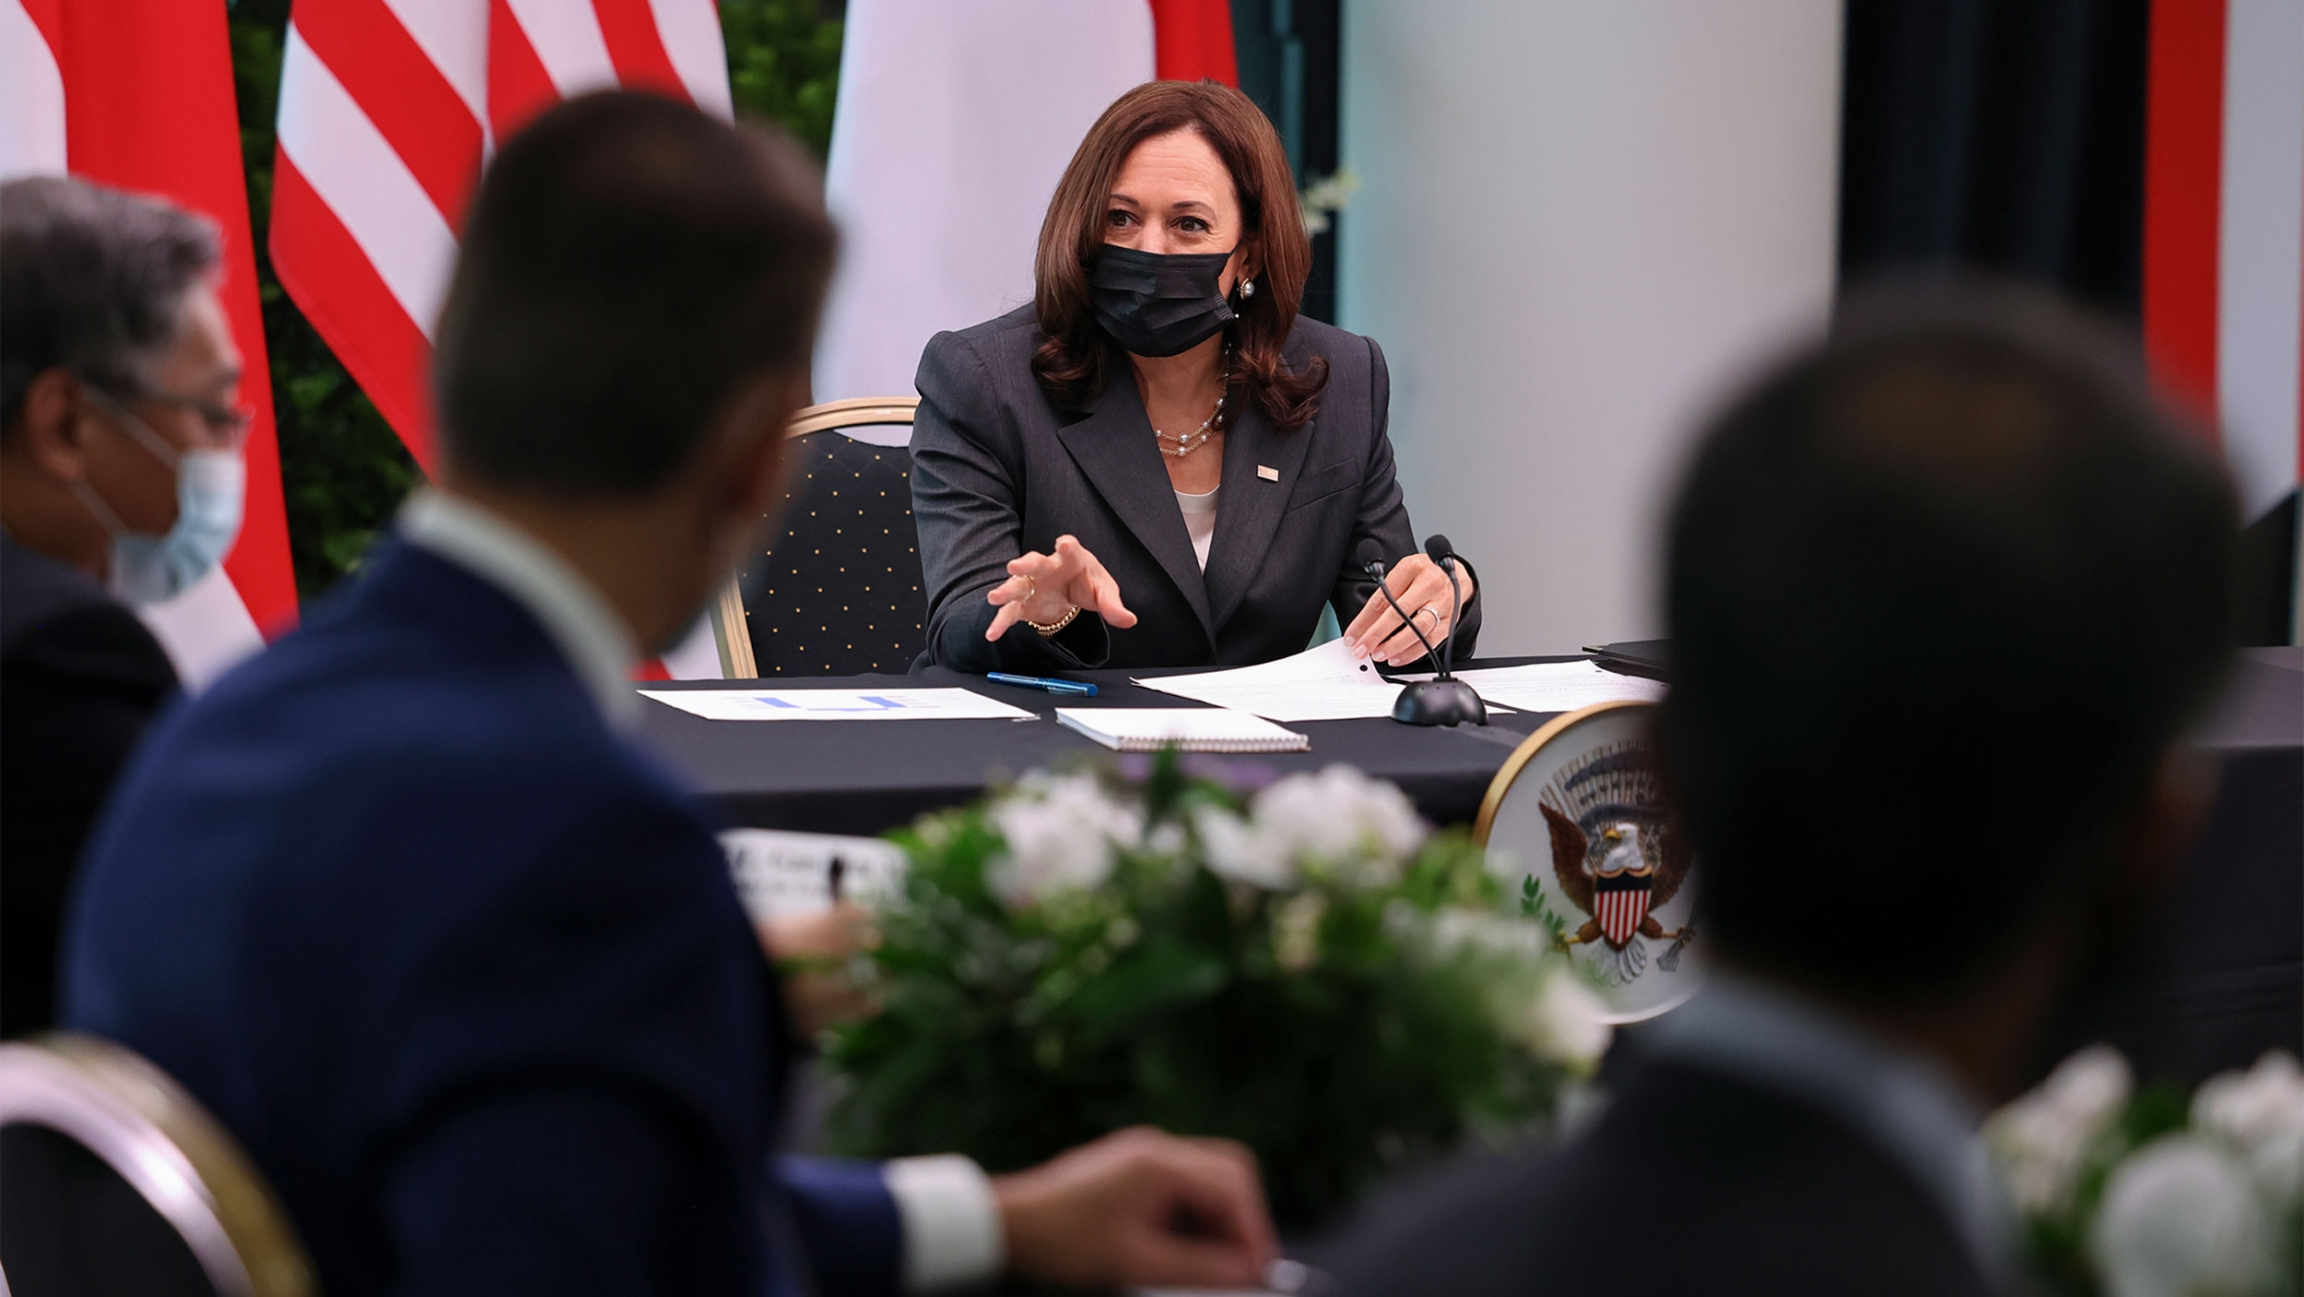 USVice President Kamala Harris takes part in a roundtable at Gardens by the Bay in Singapore